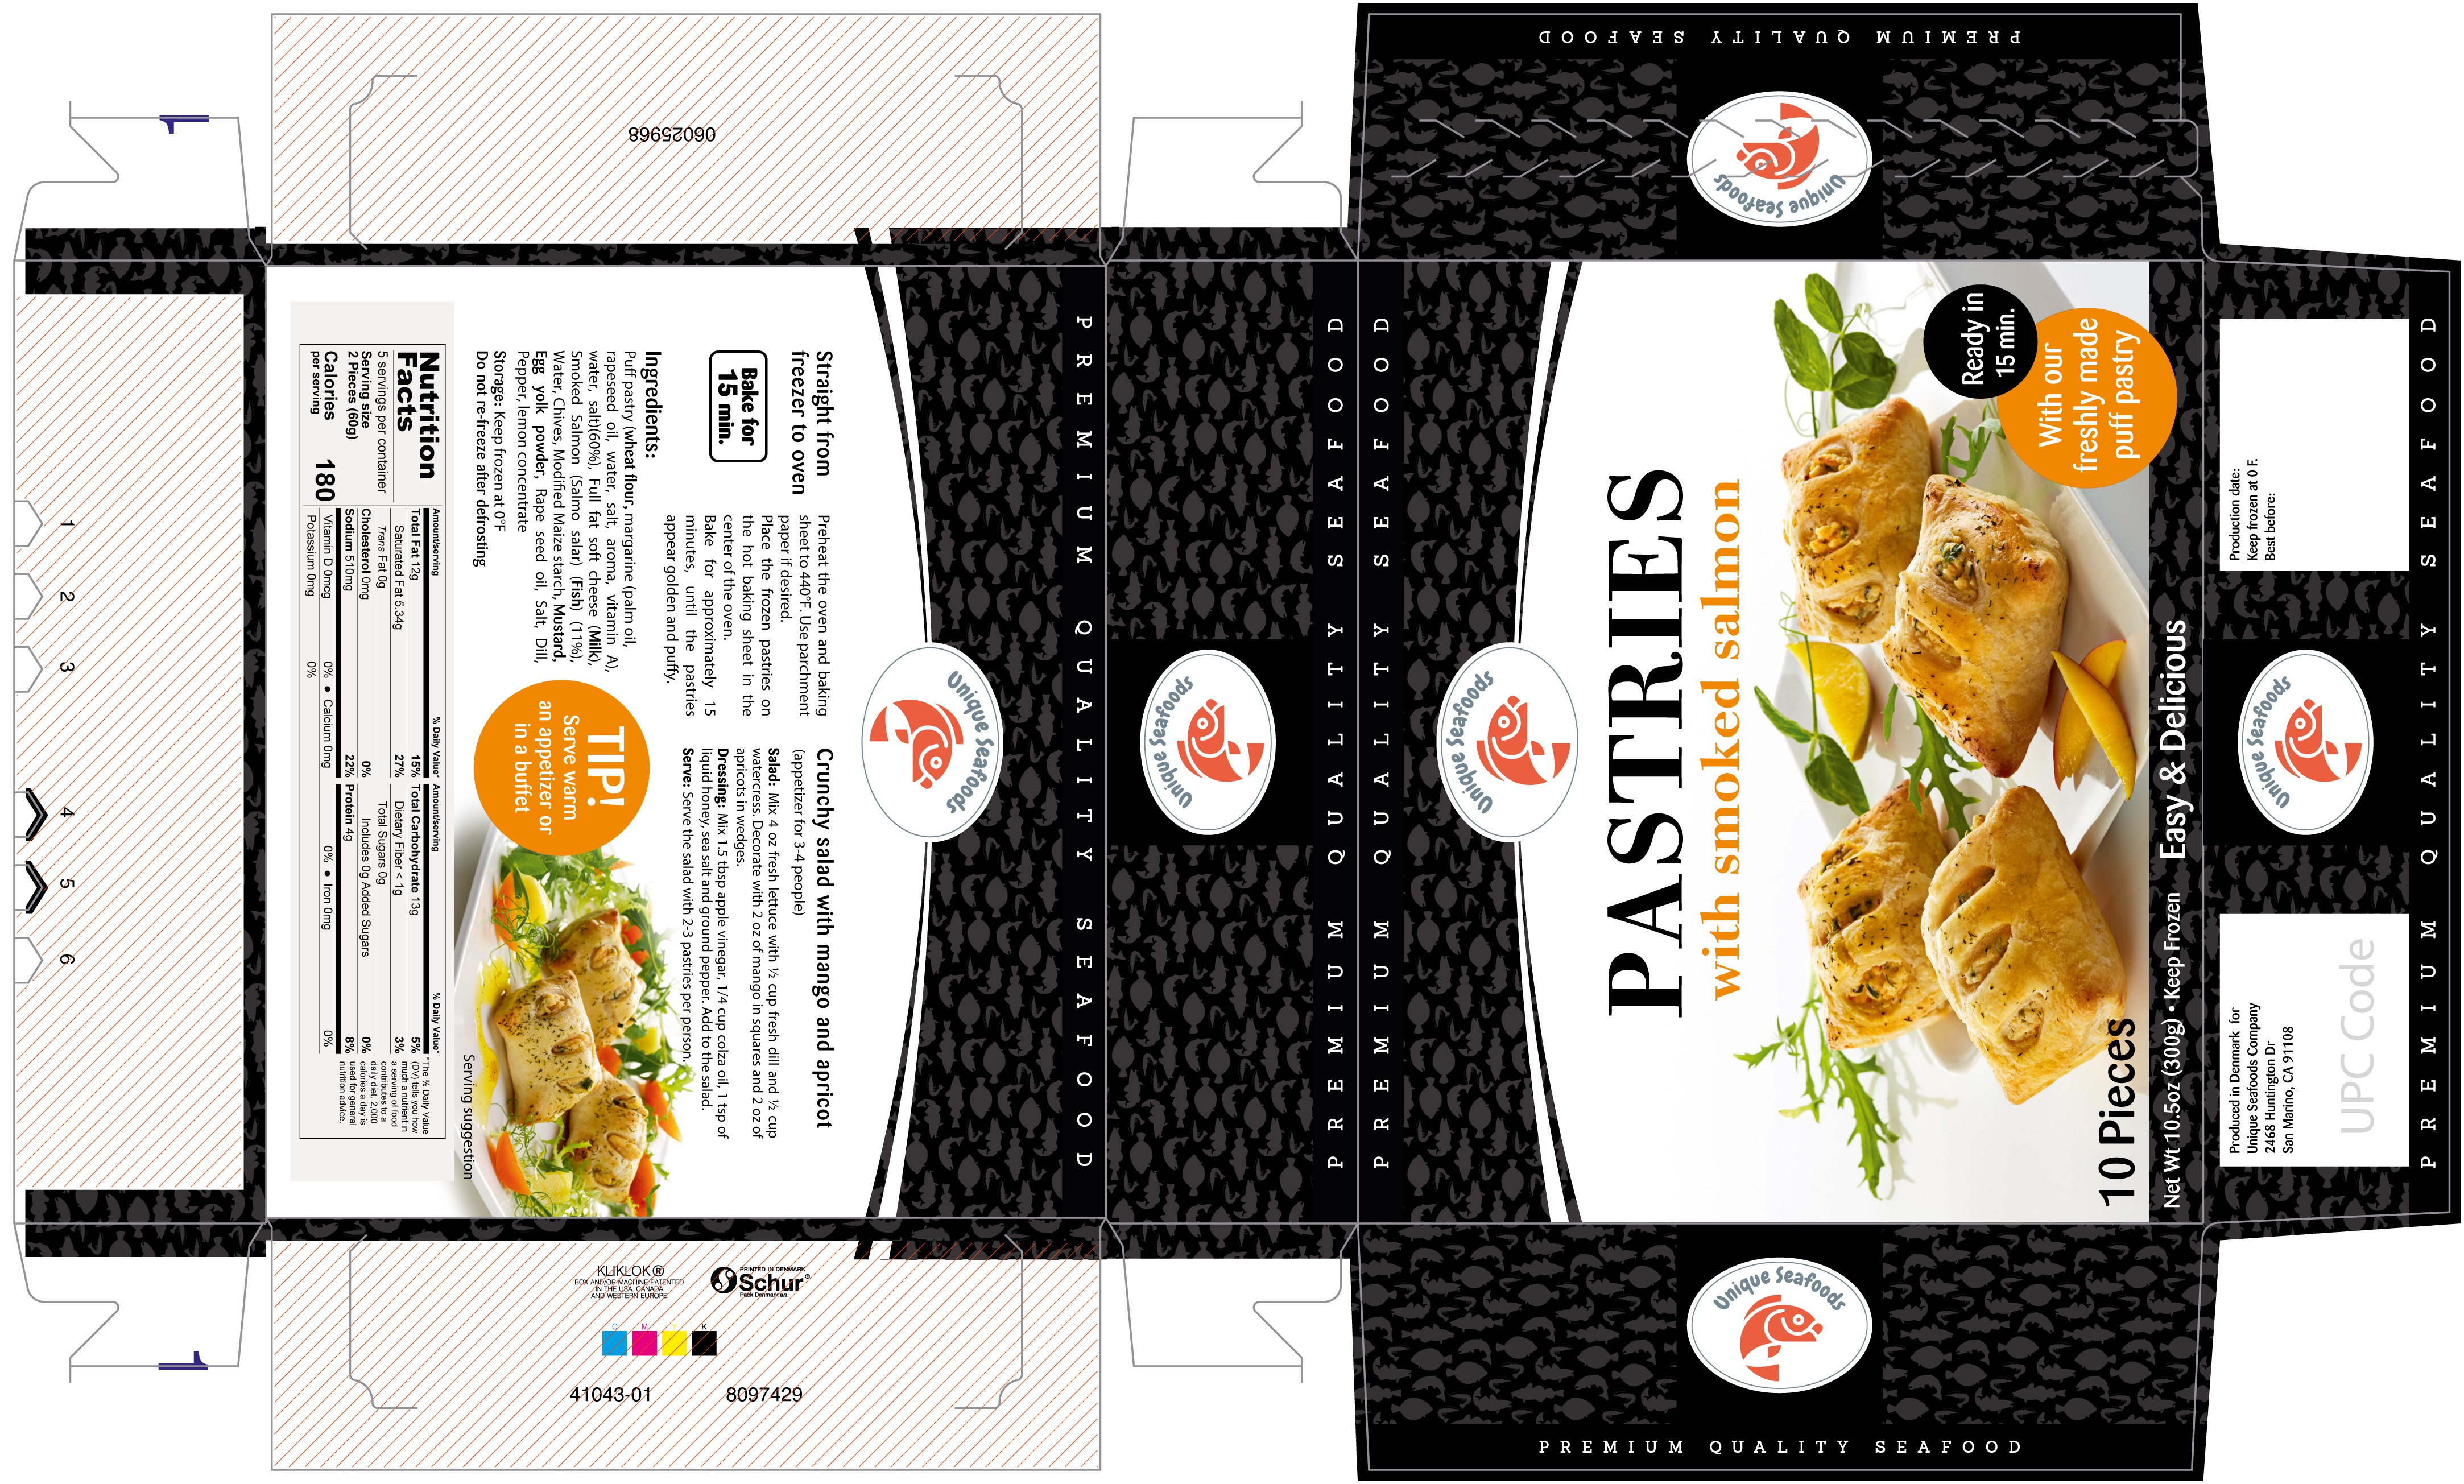 Language and minor design changes on pastry packaging